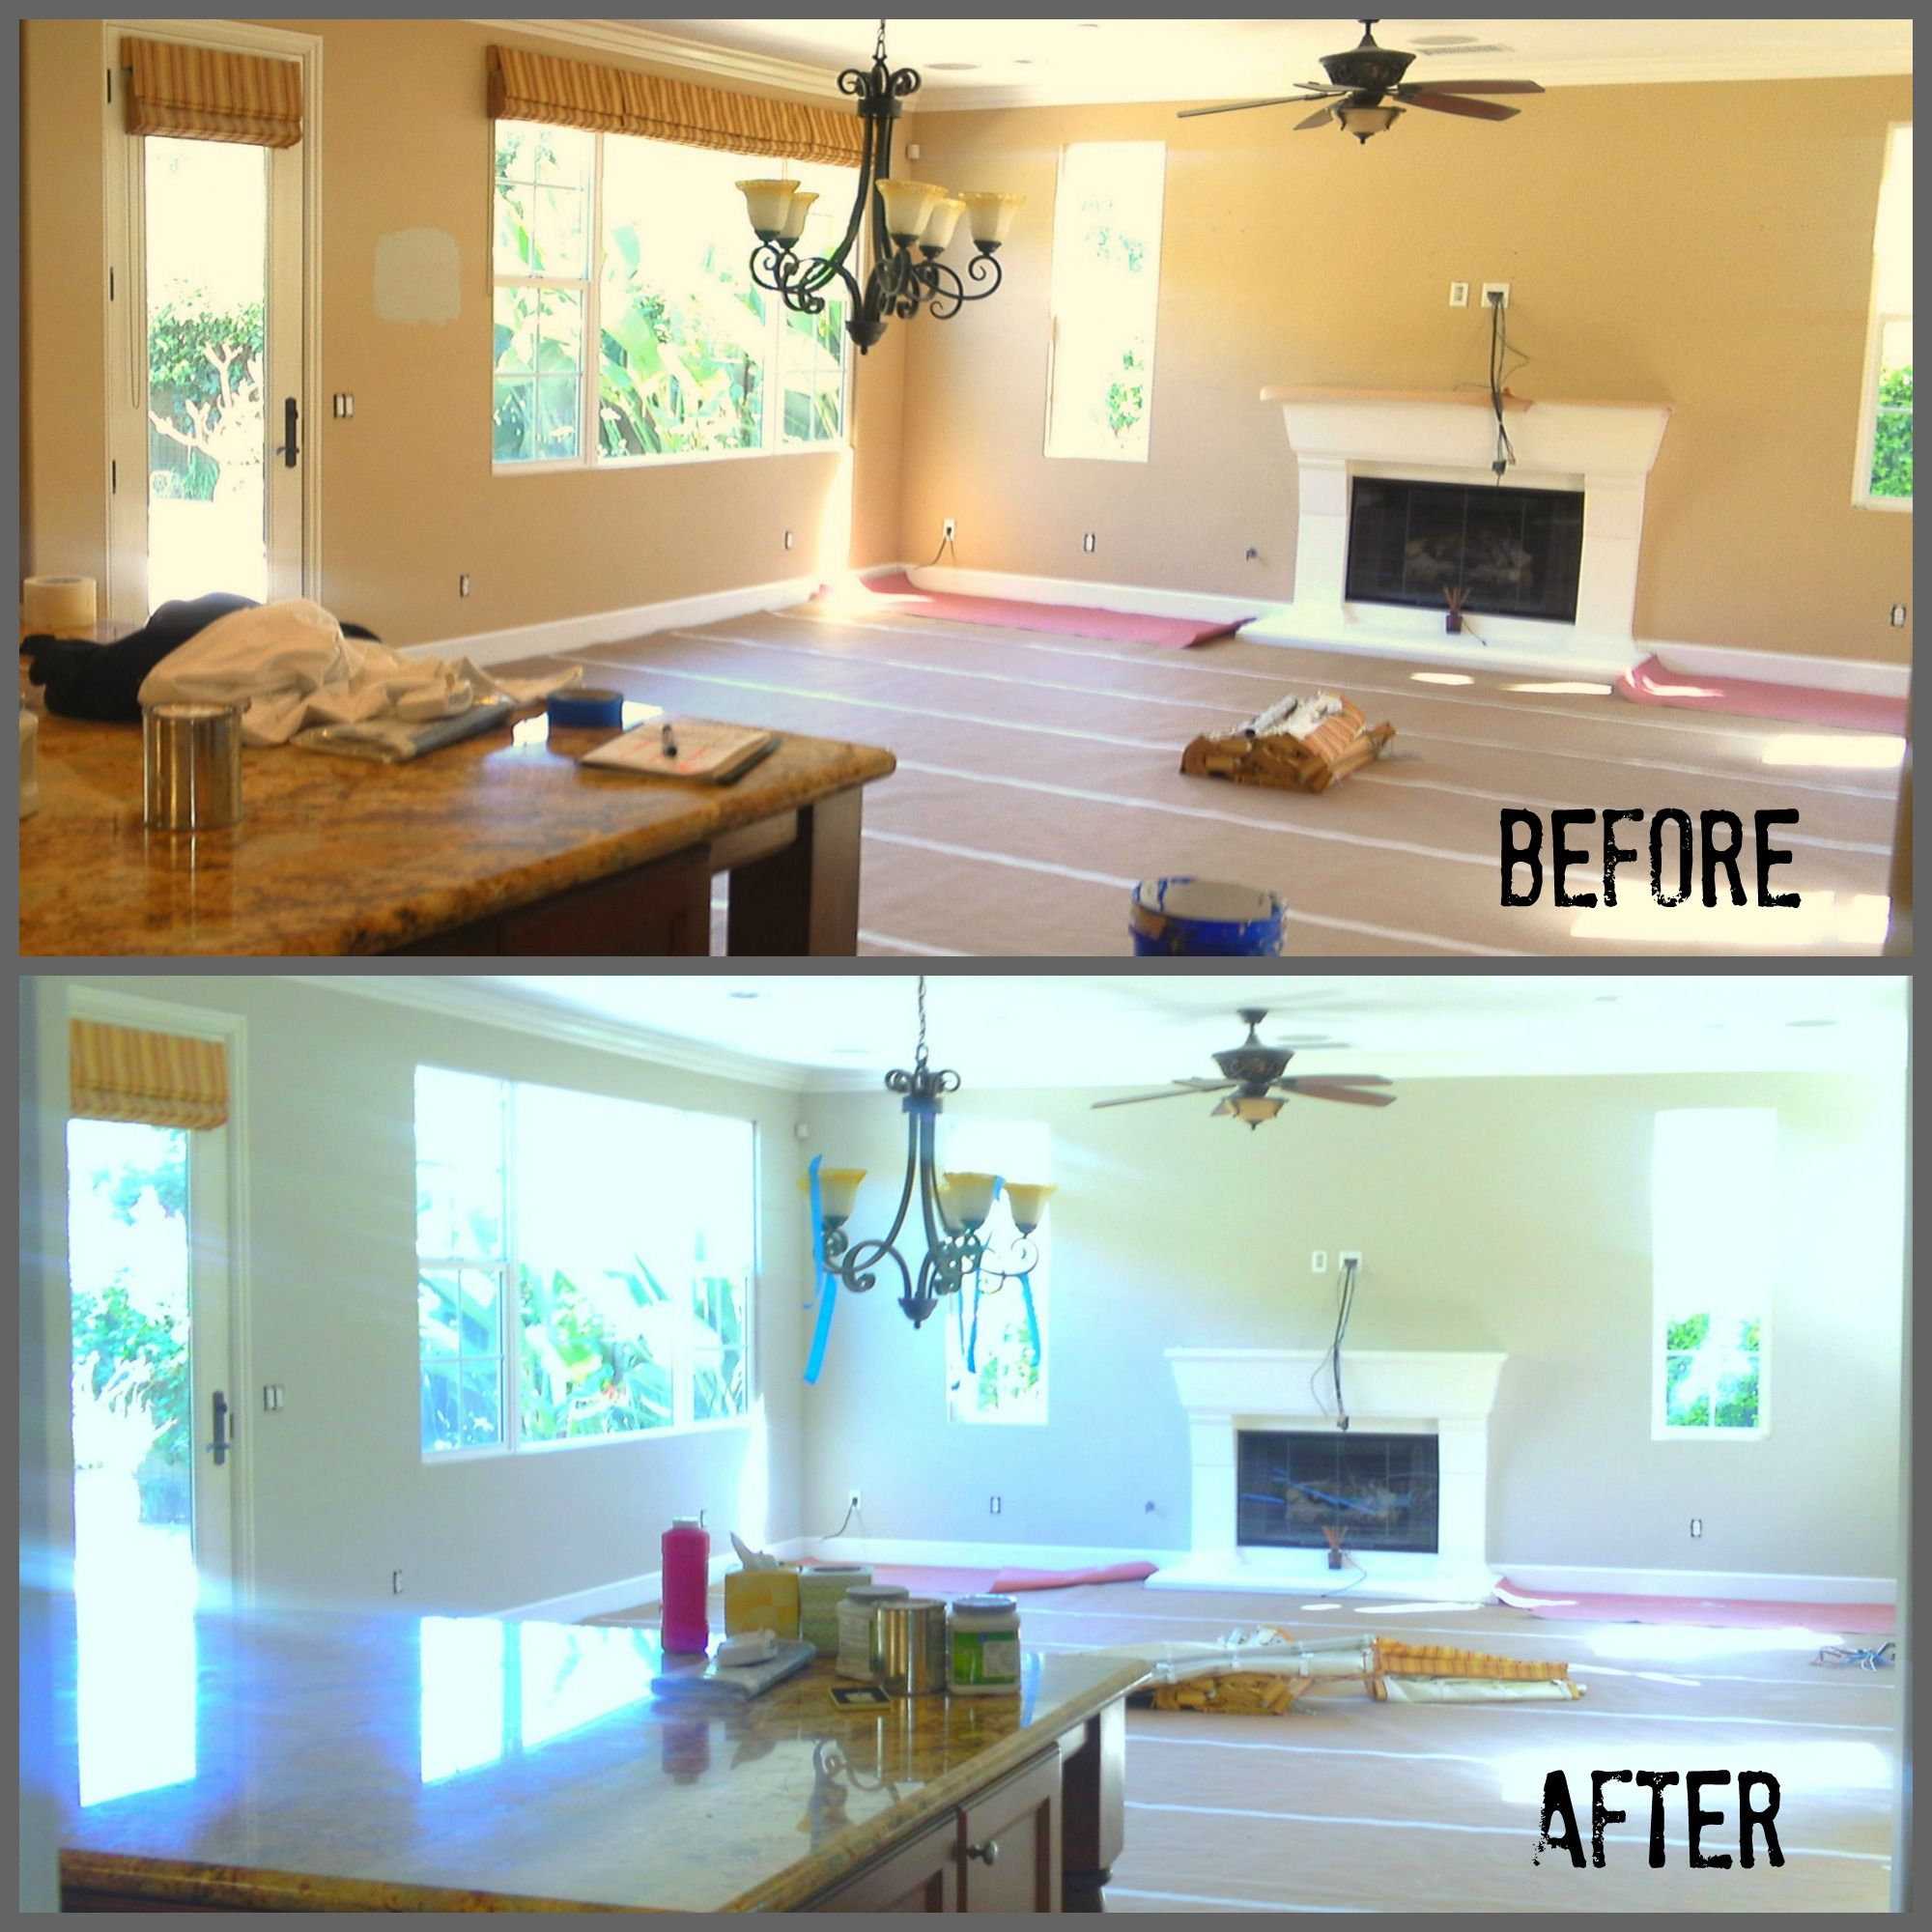 Interior Painting Contractor: La Costa Interior Repaint By Maverick Painting San Diego